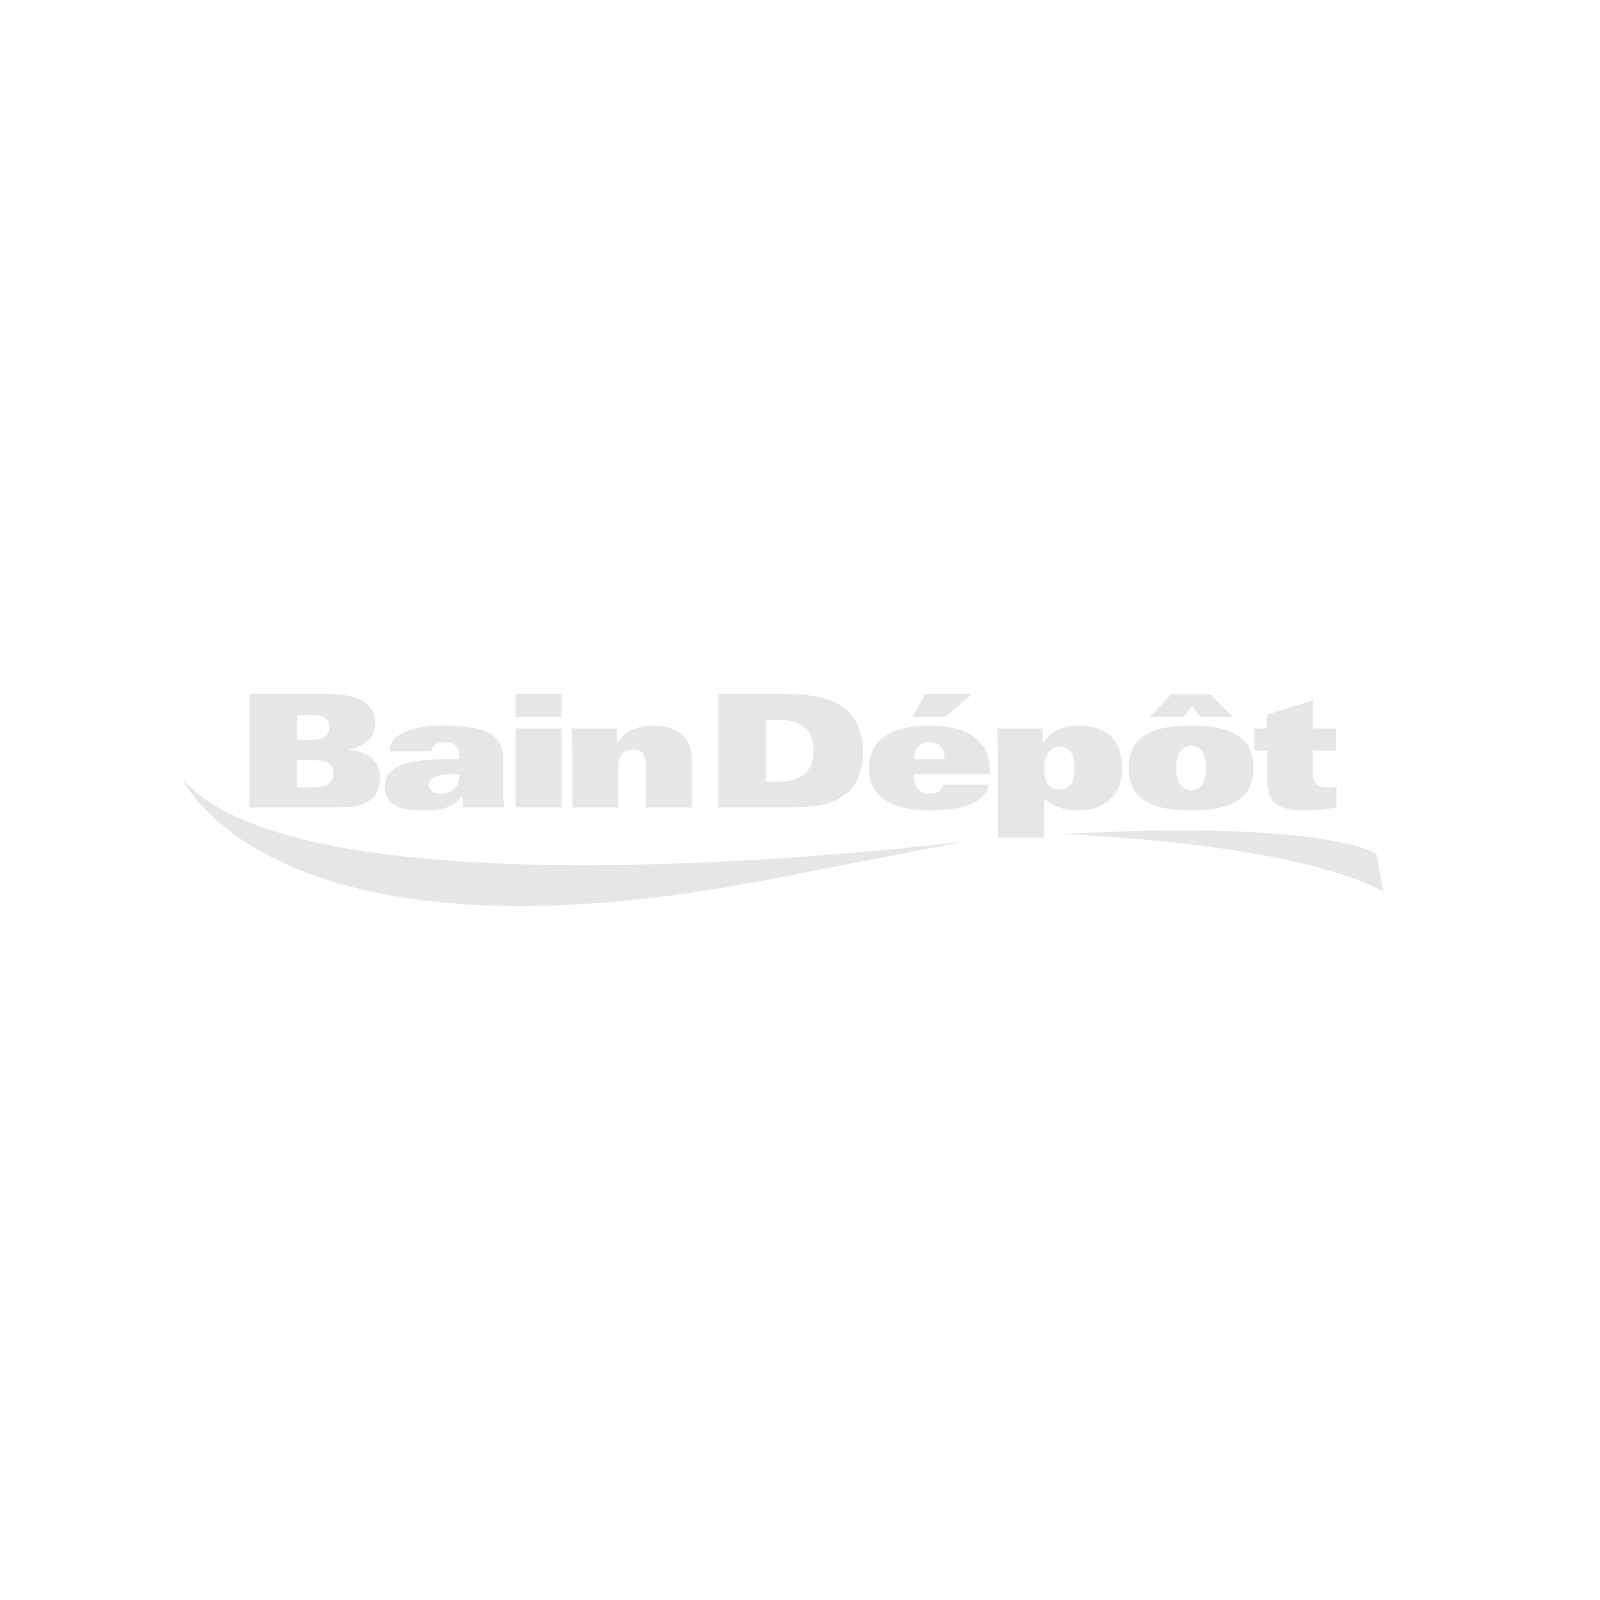 AlinO-Gard Waterproof Membrane -  1 m x 10 m (108 sq. ft.)